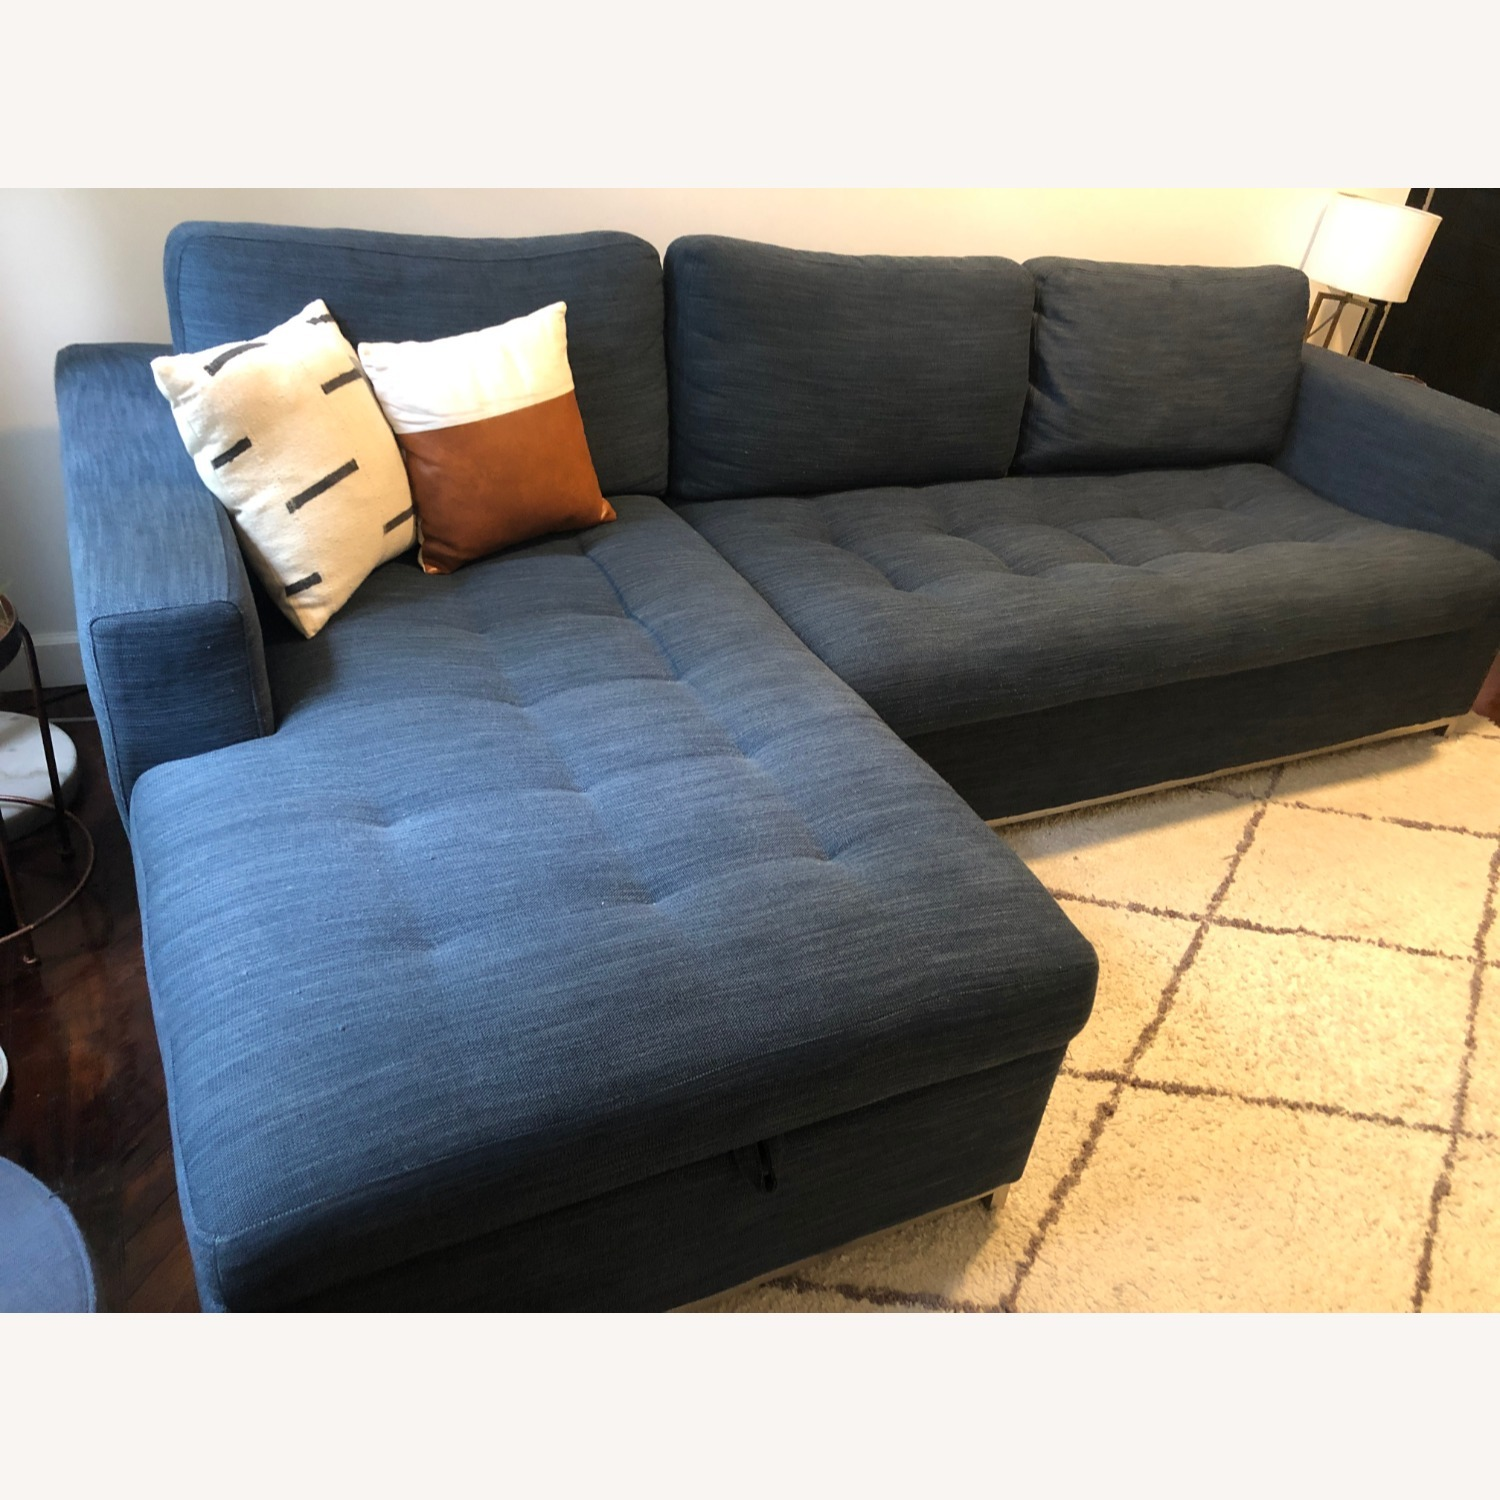 Article Soma Midnight Blue Sleeper Sectional Sofa - image-1